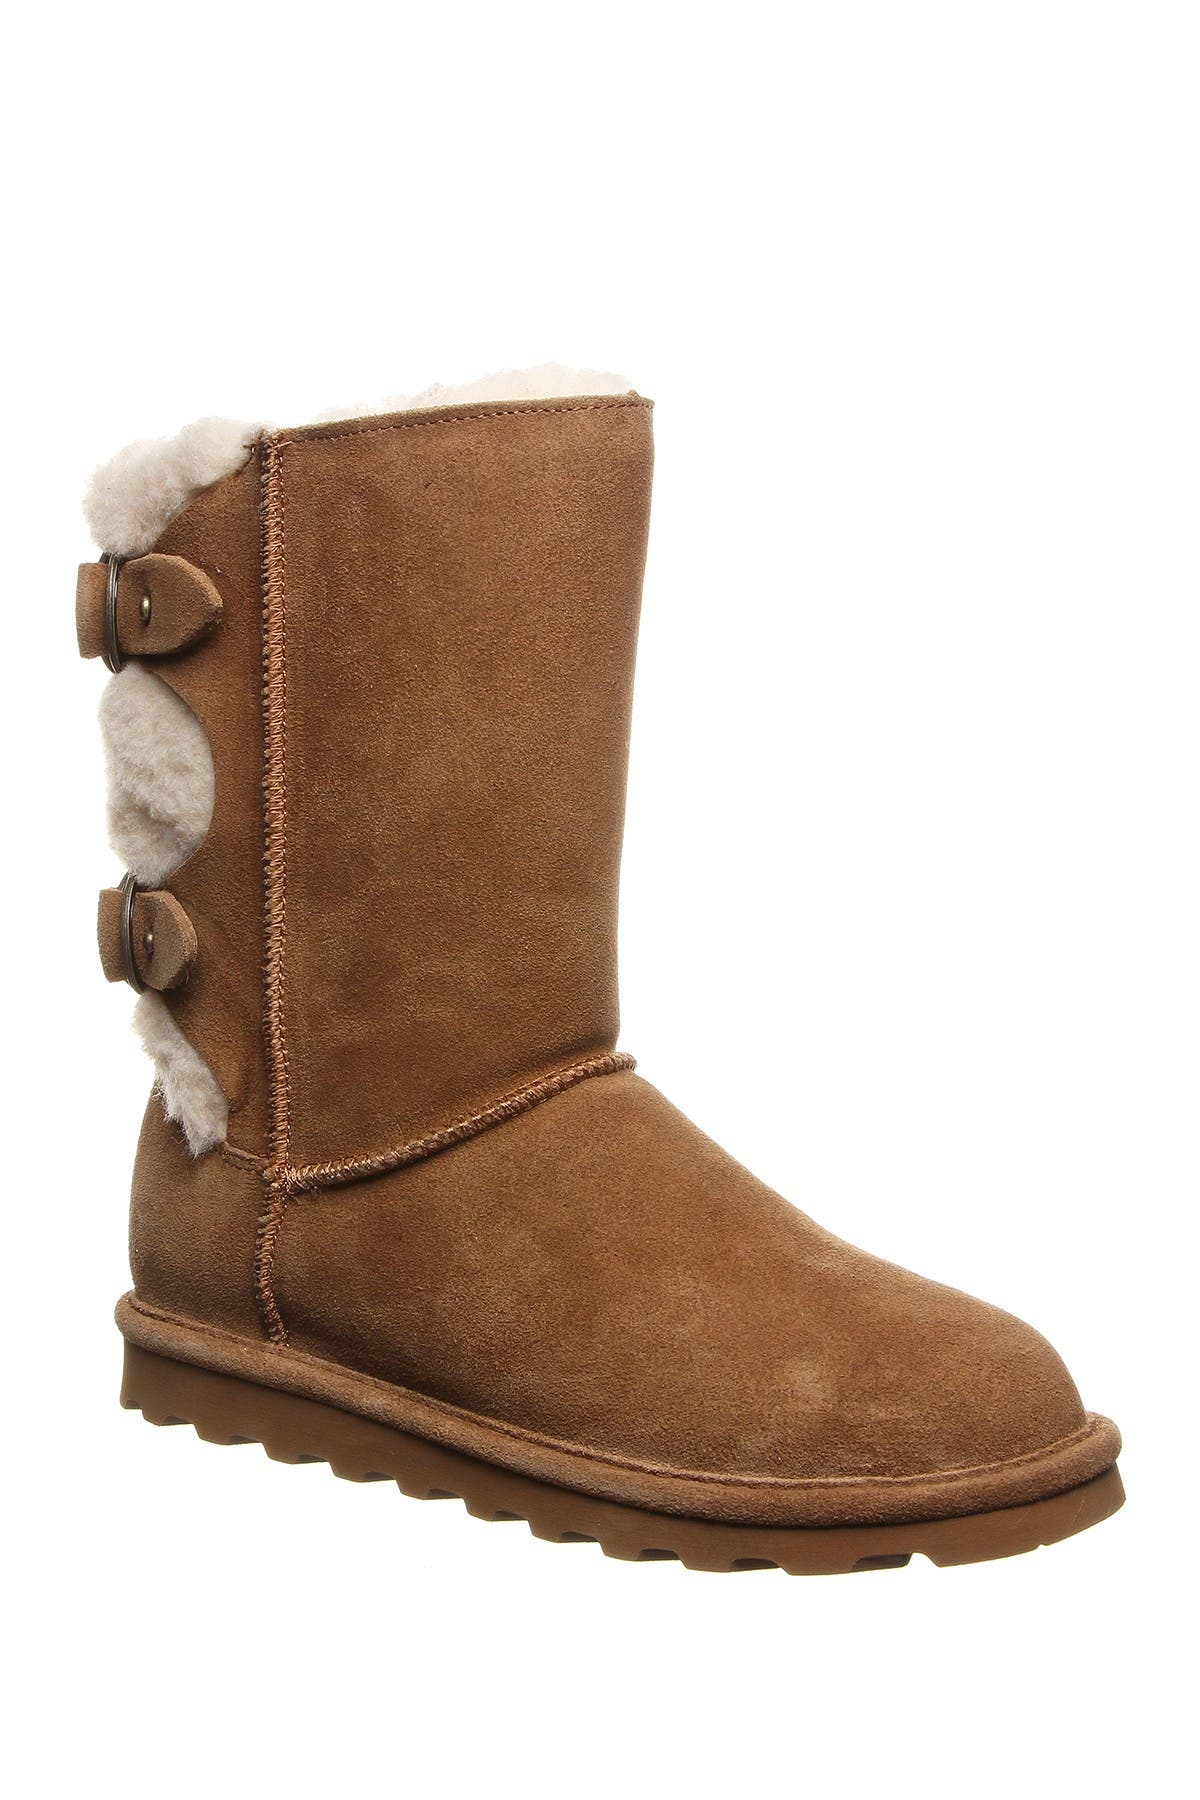 Image of BEARPAW Eloise Wide Suede Ankle Boot